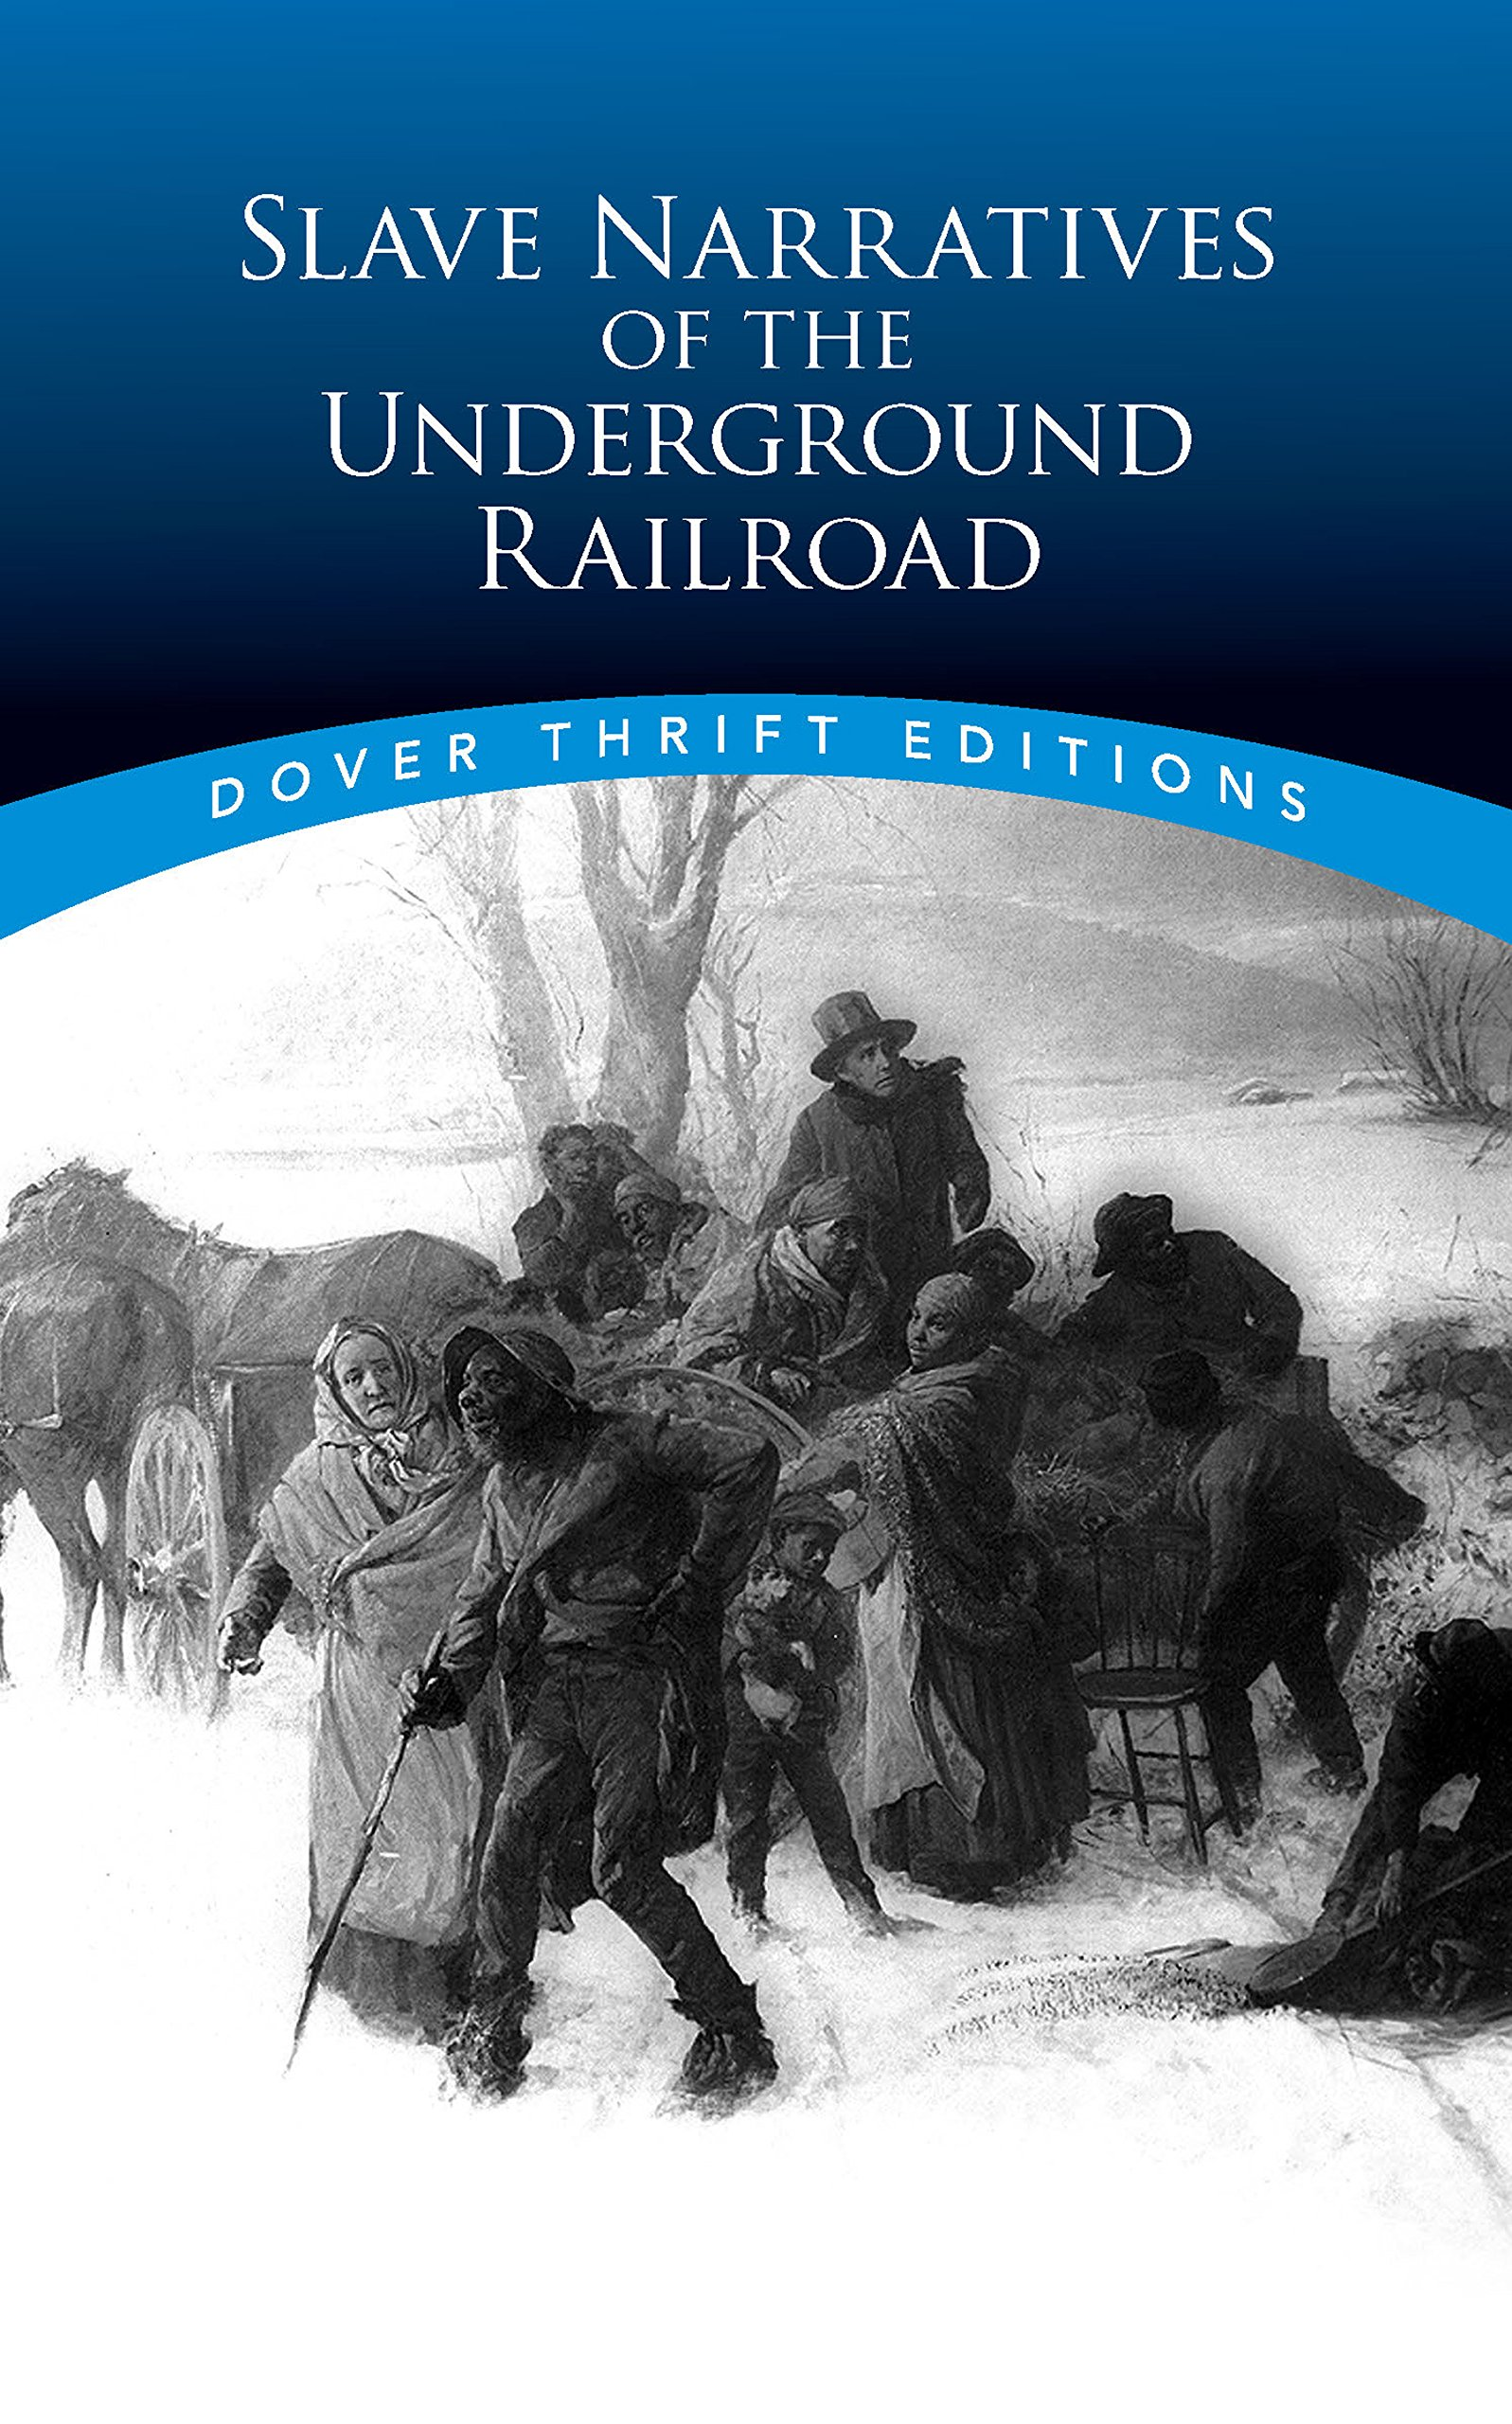 Slave Narratives of the Underground Railroad (Dover Thrift Editions): Christine Rudisel, Bob Blaisdell: 9780486780610: Amazon.com: Books